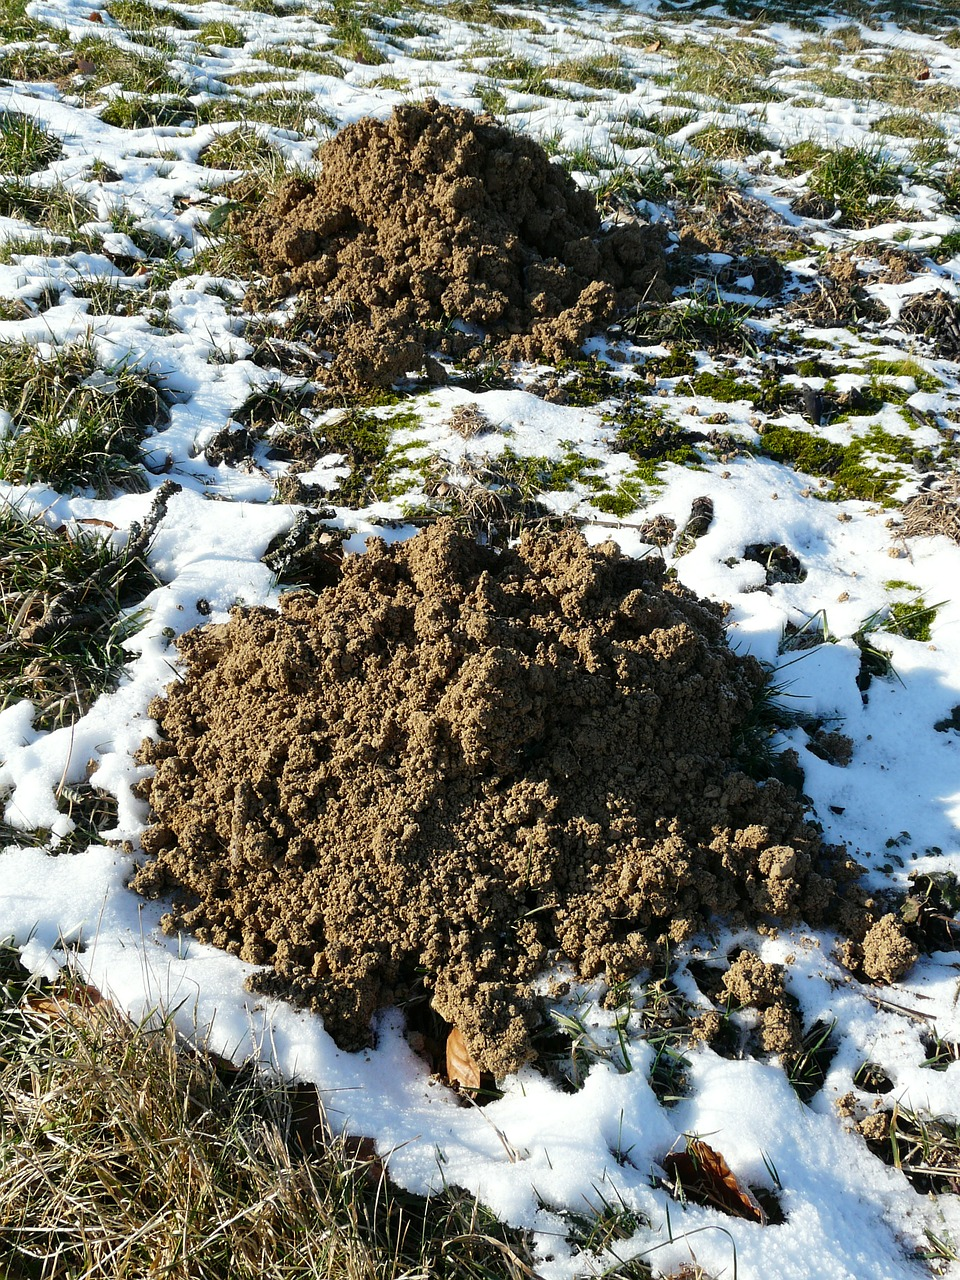 molehill mole earth free photo